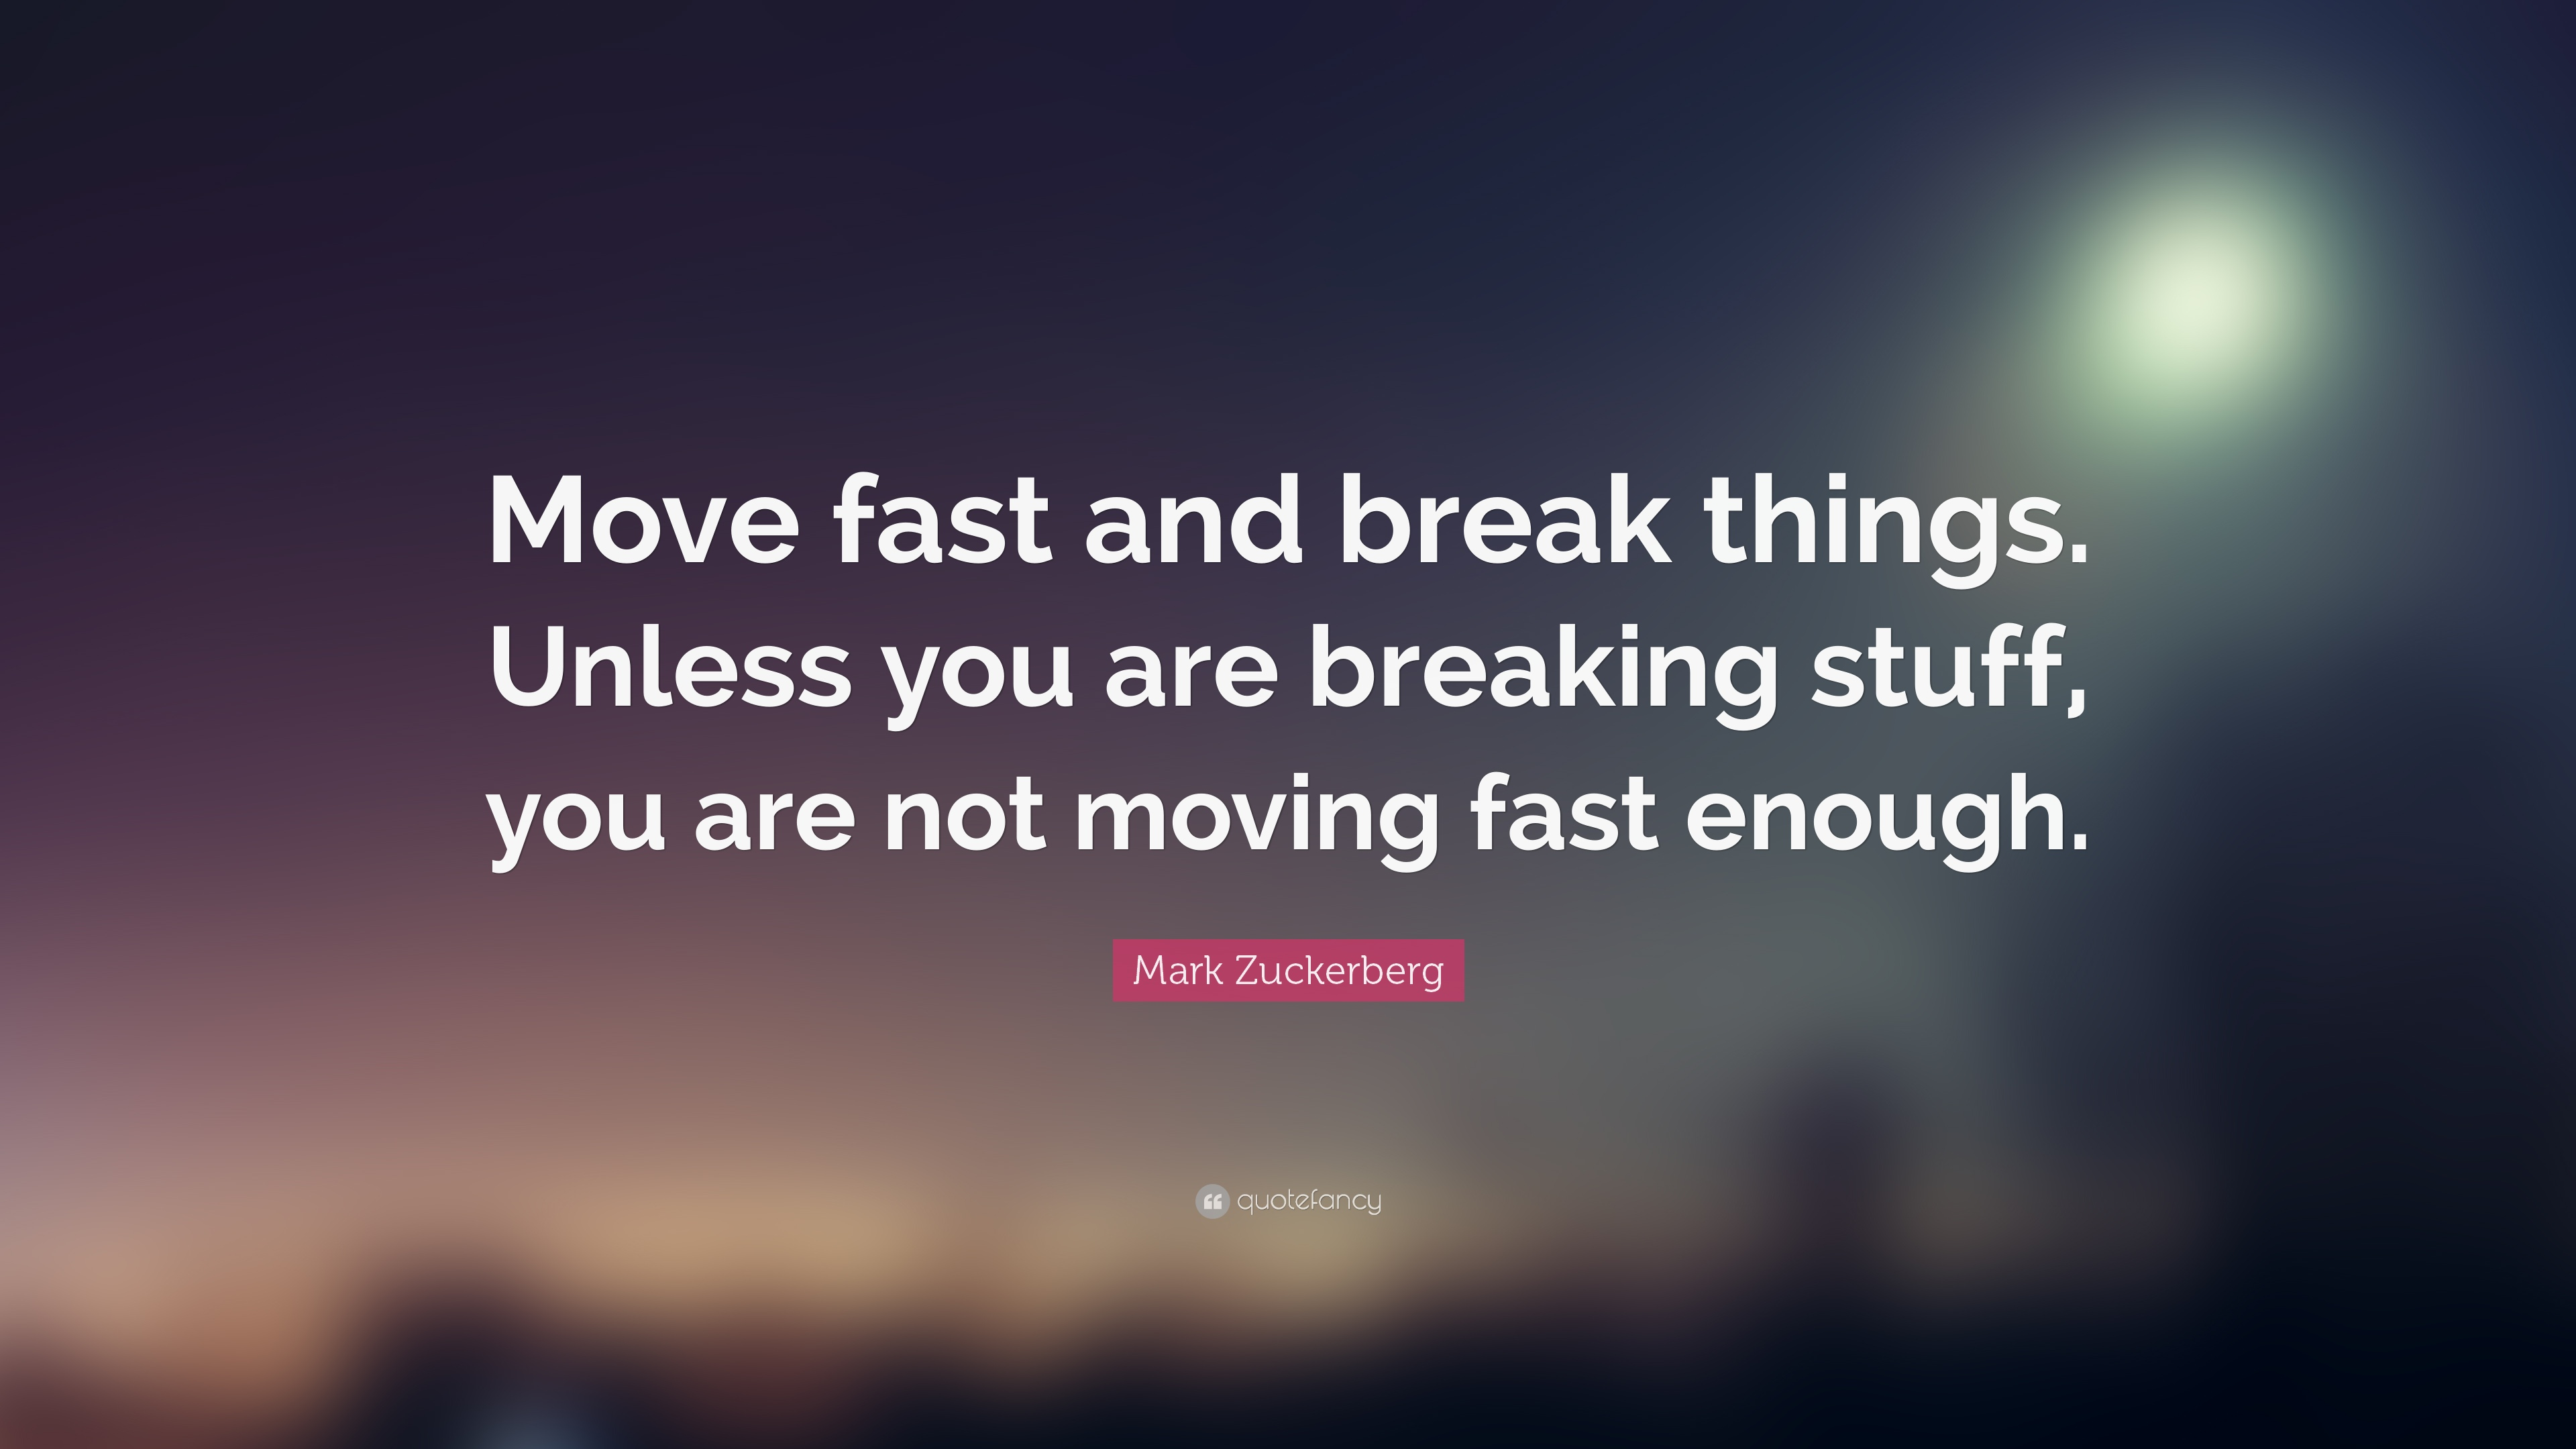 Mark Zuckerberg Quotes Hd Wallpaper Mark Zuckerberg Quote Move Fast And Break Things Unless